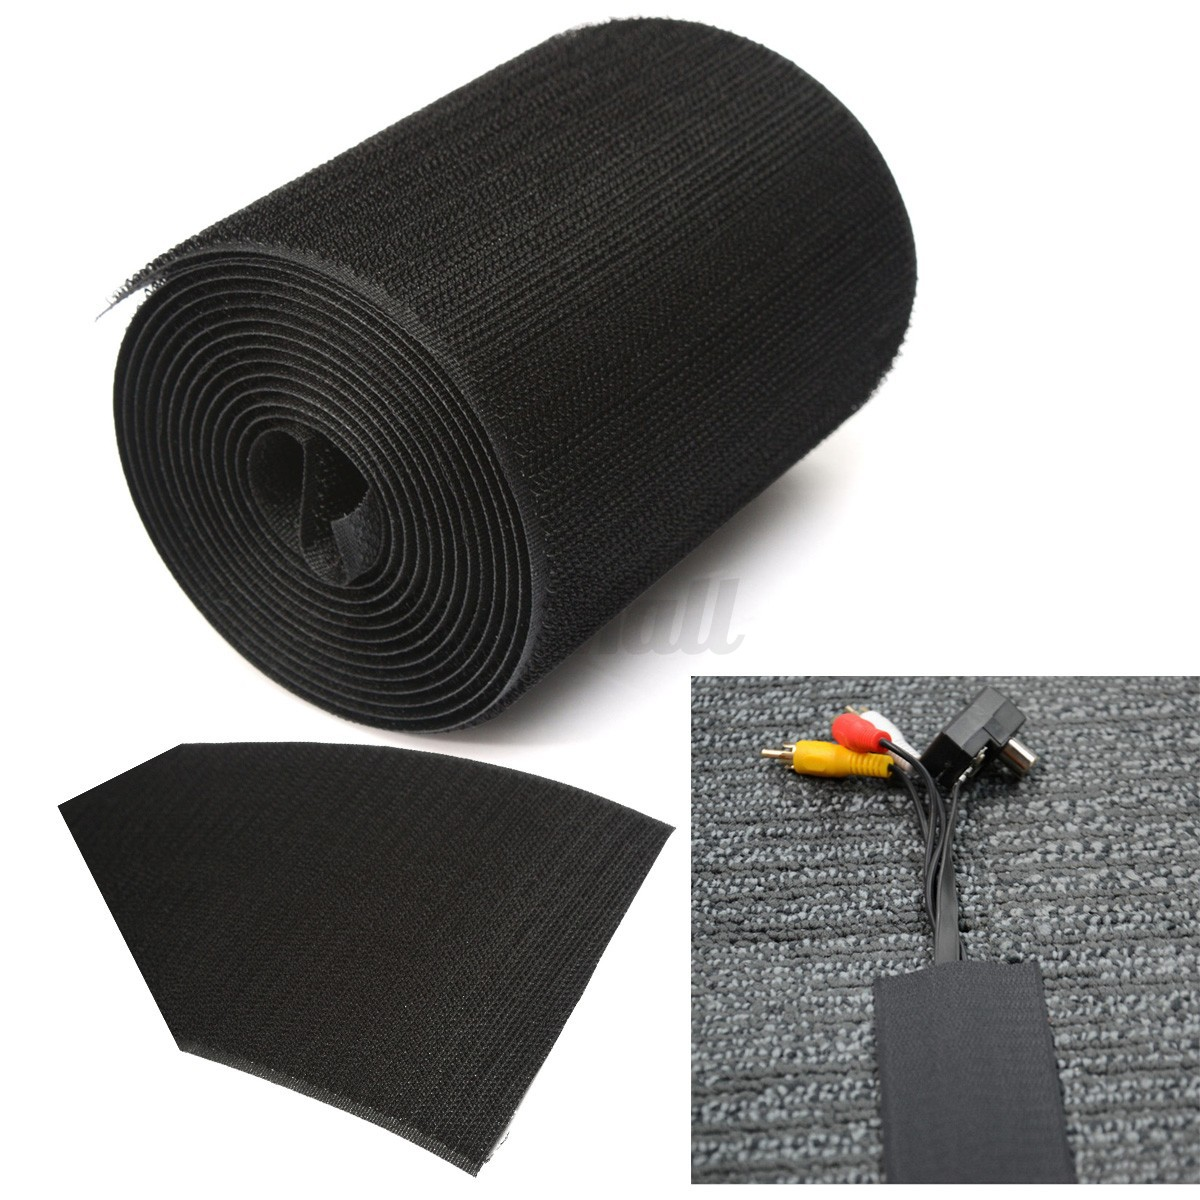 velcro cord covers for carpet safcord flexible cable cover for carpet floor velcro tape with. Black Bedroom Furniture Sets. Home Design Ideas